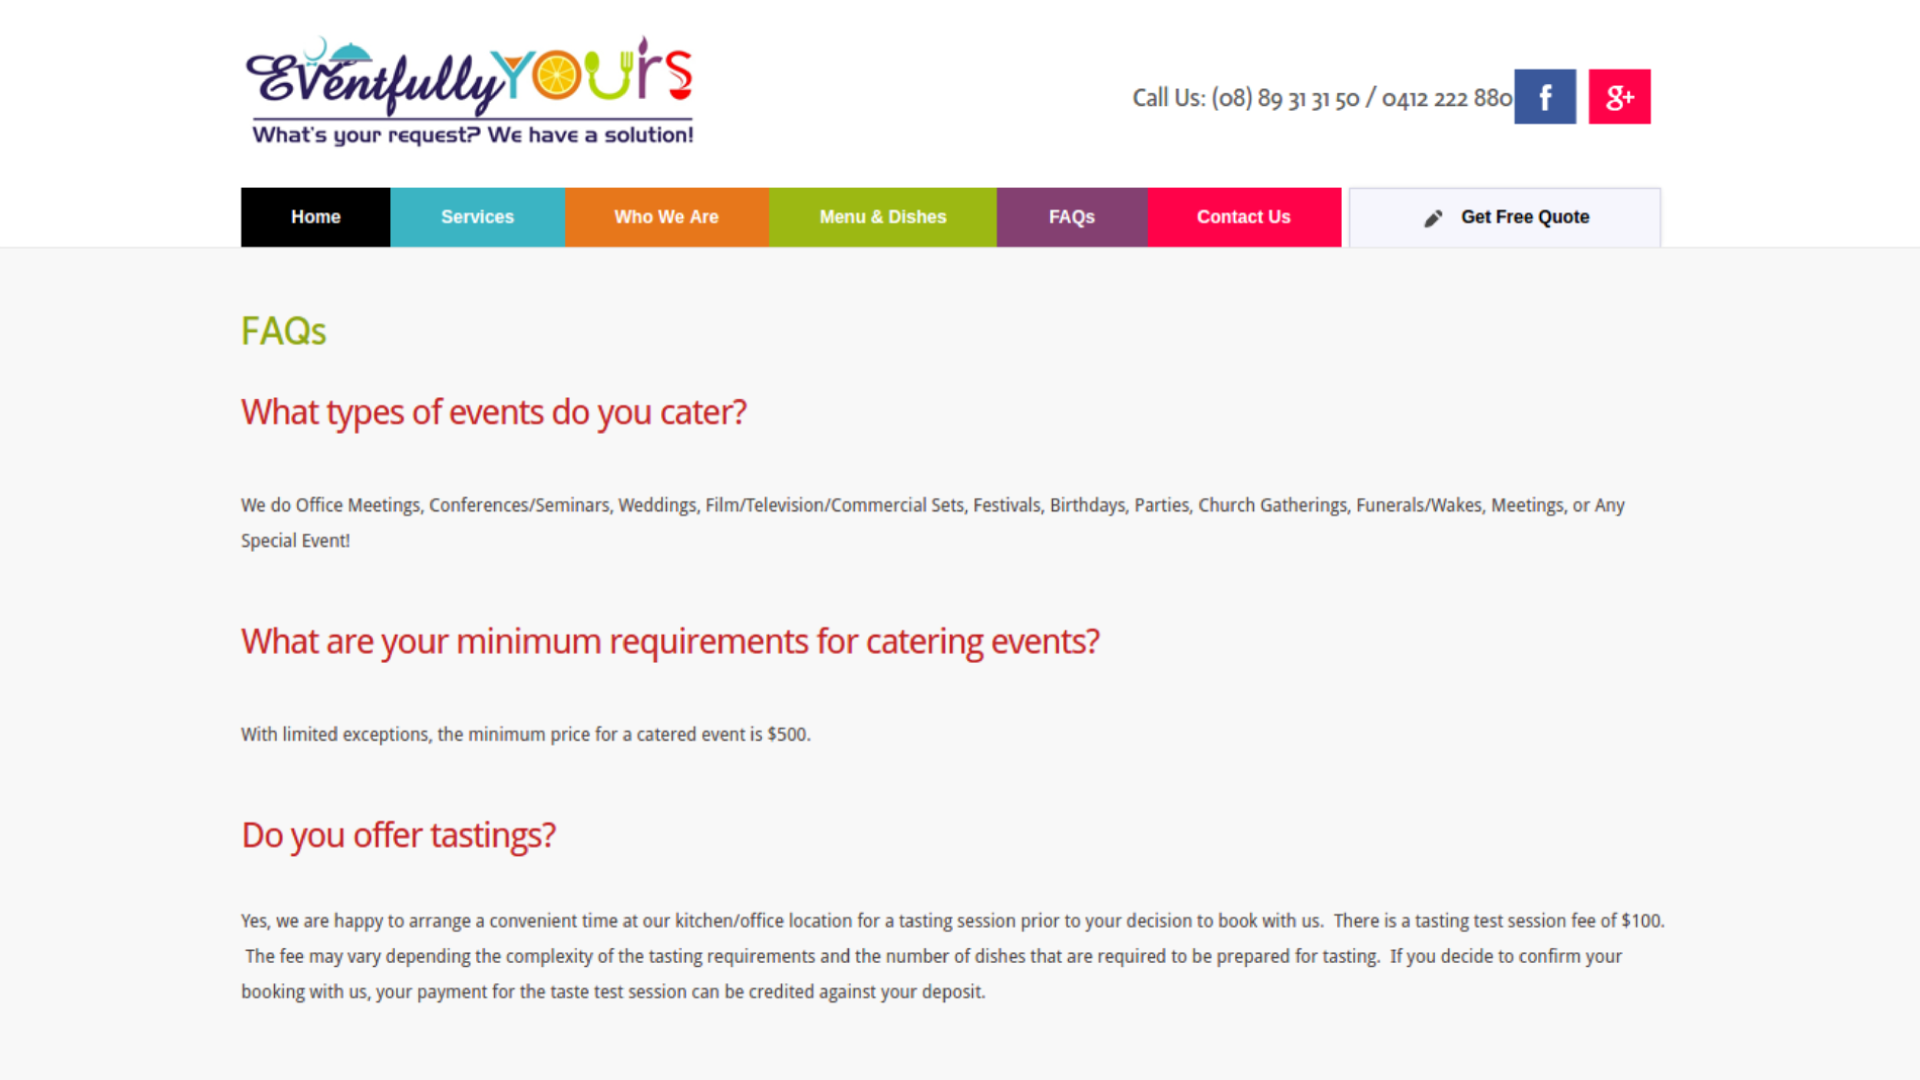 eventfullyyours-4.png